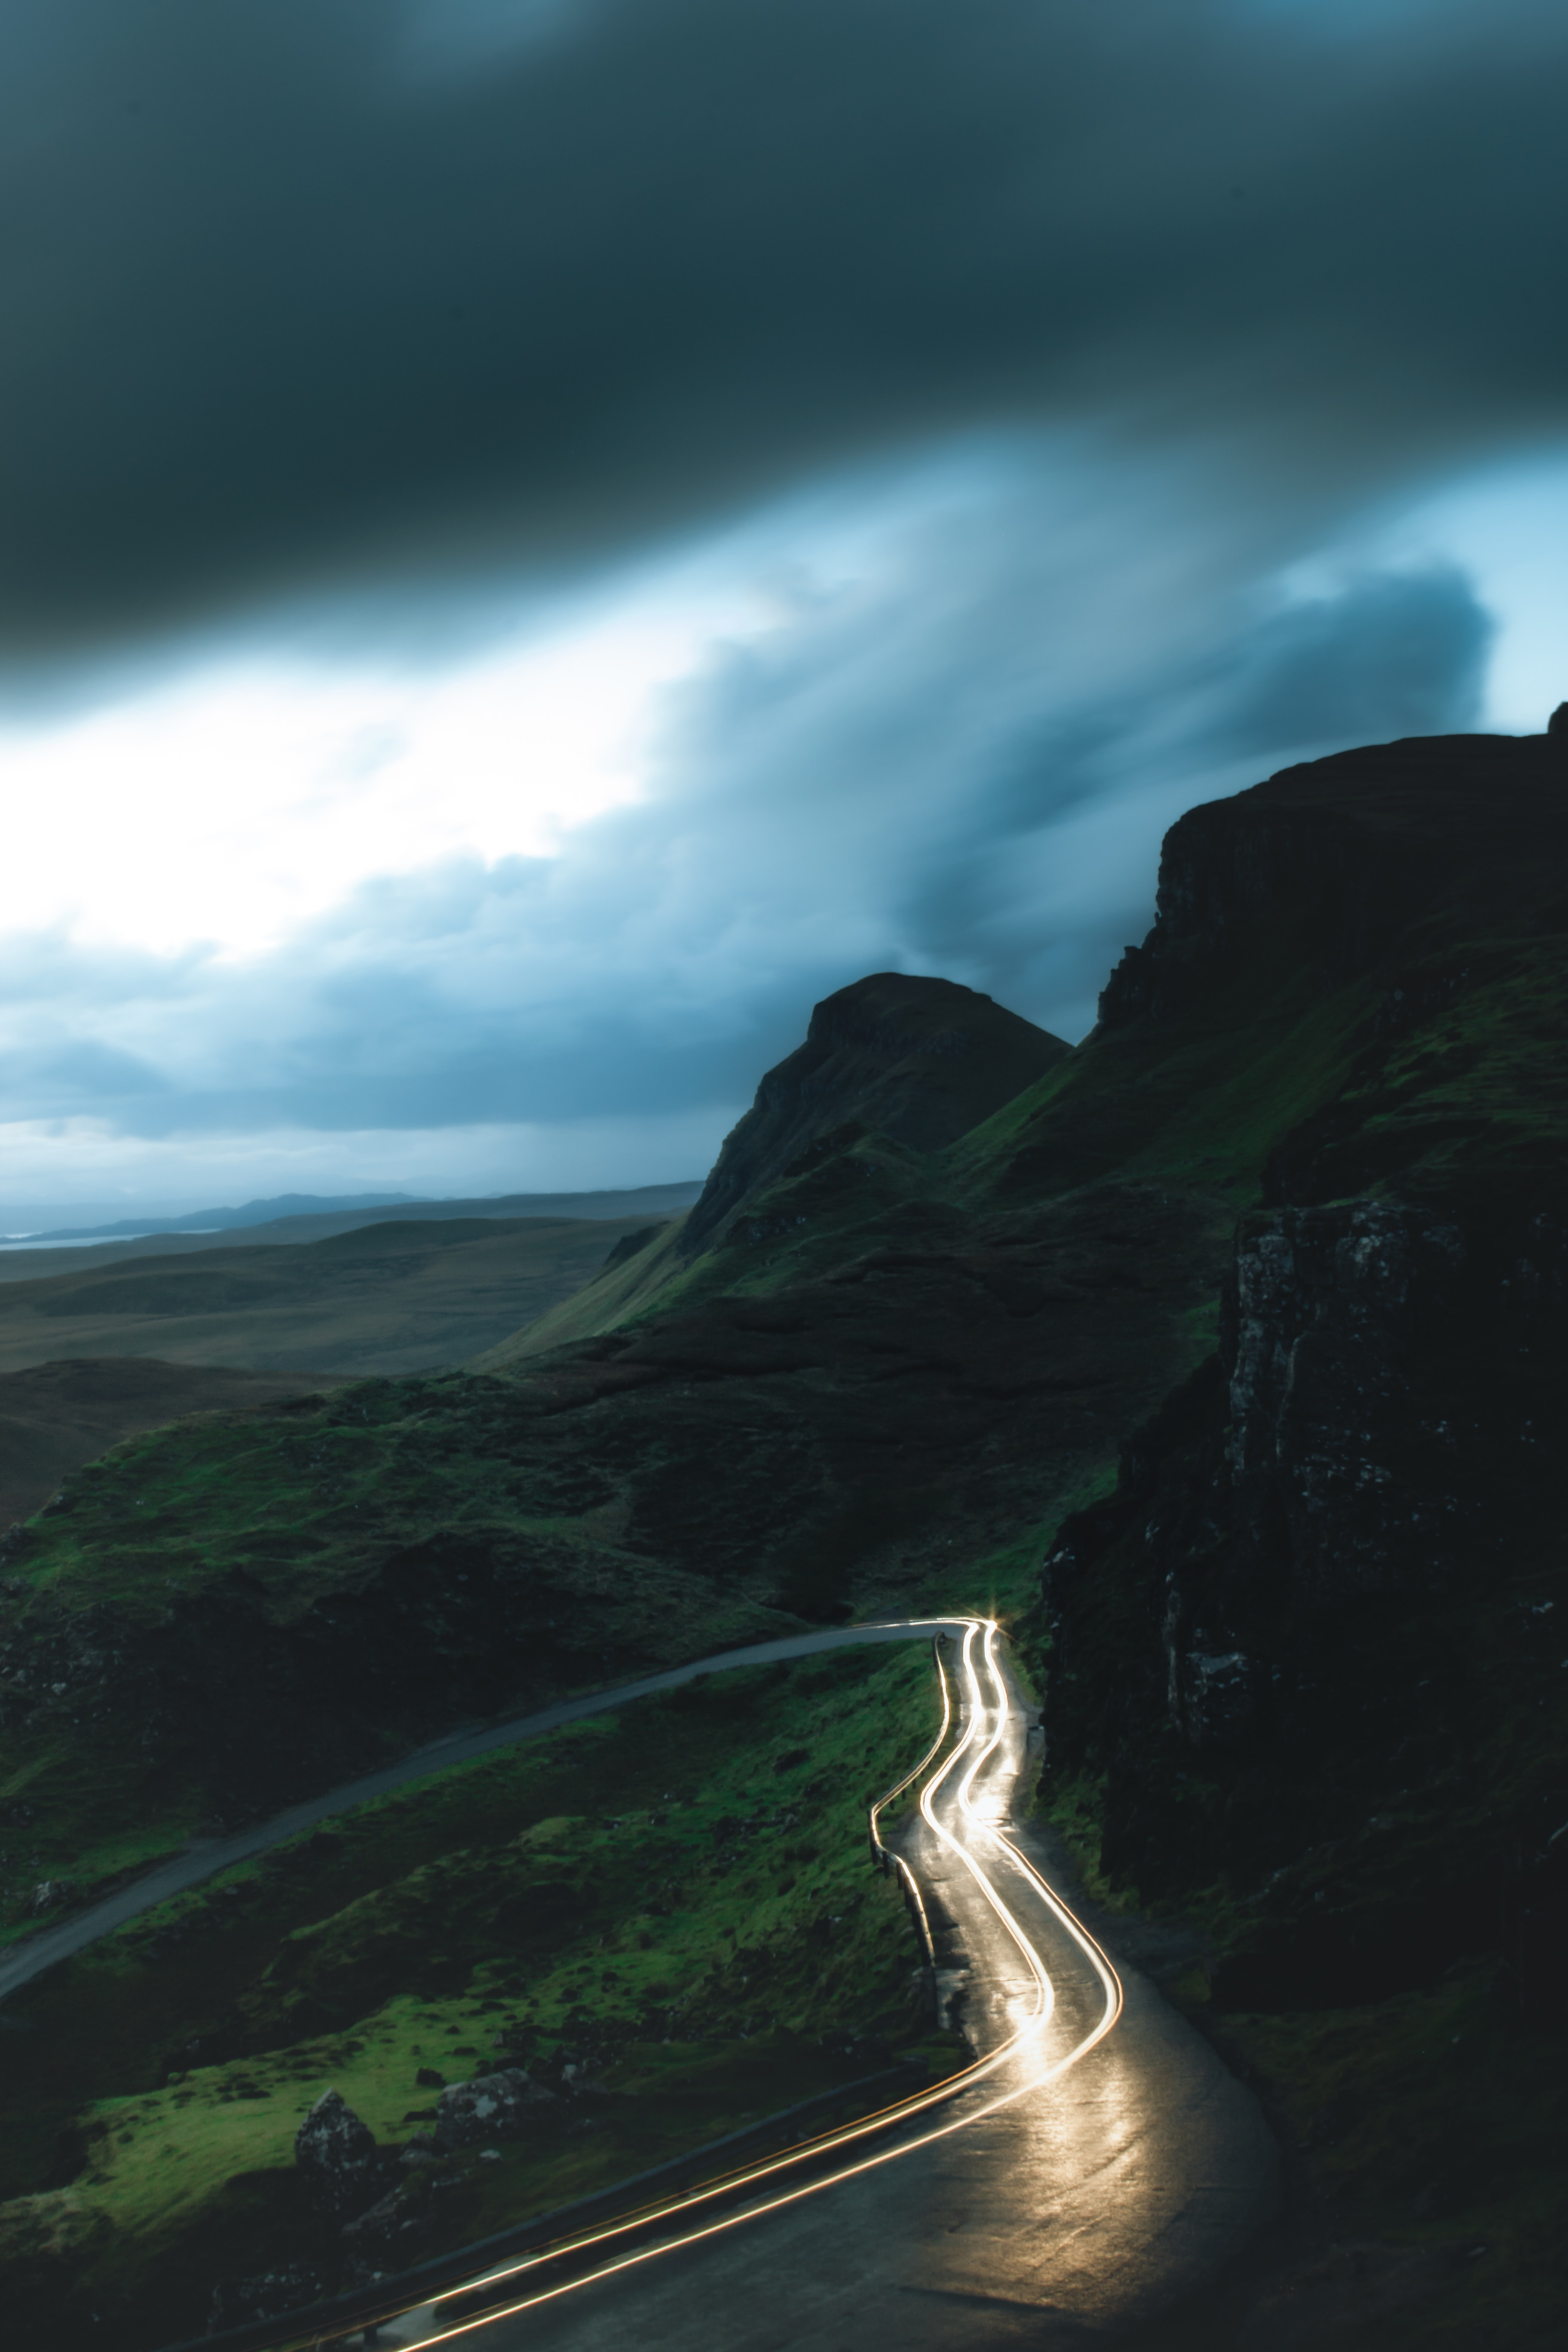 lighted-car-in-winding-road-2324925